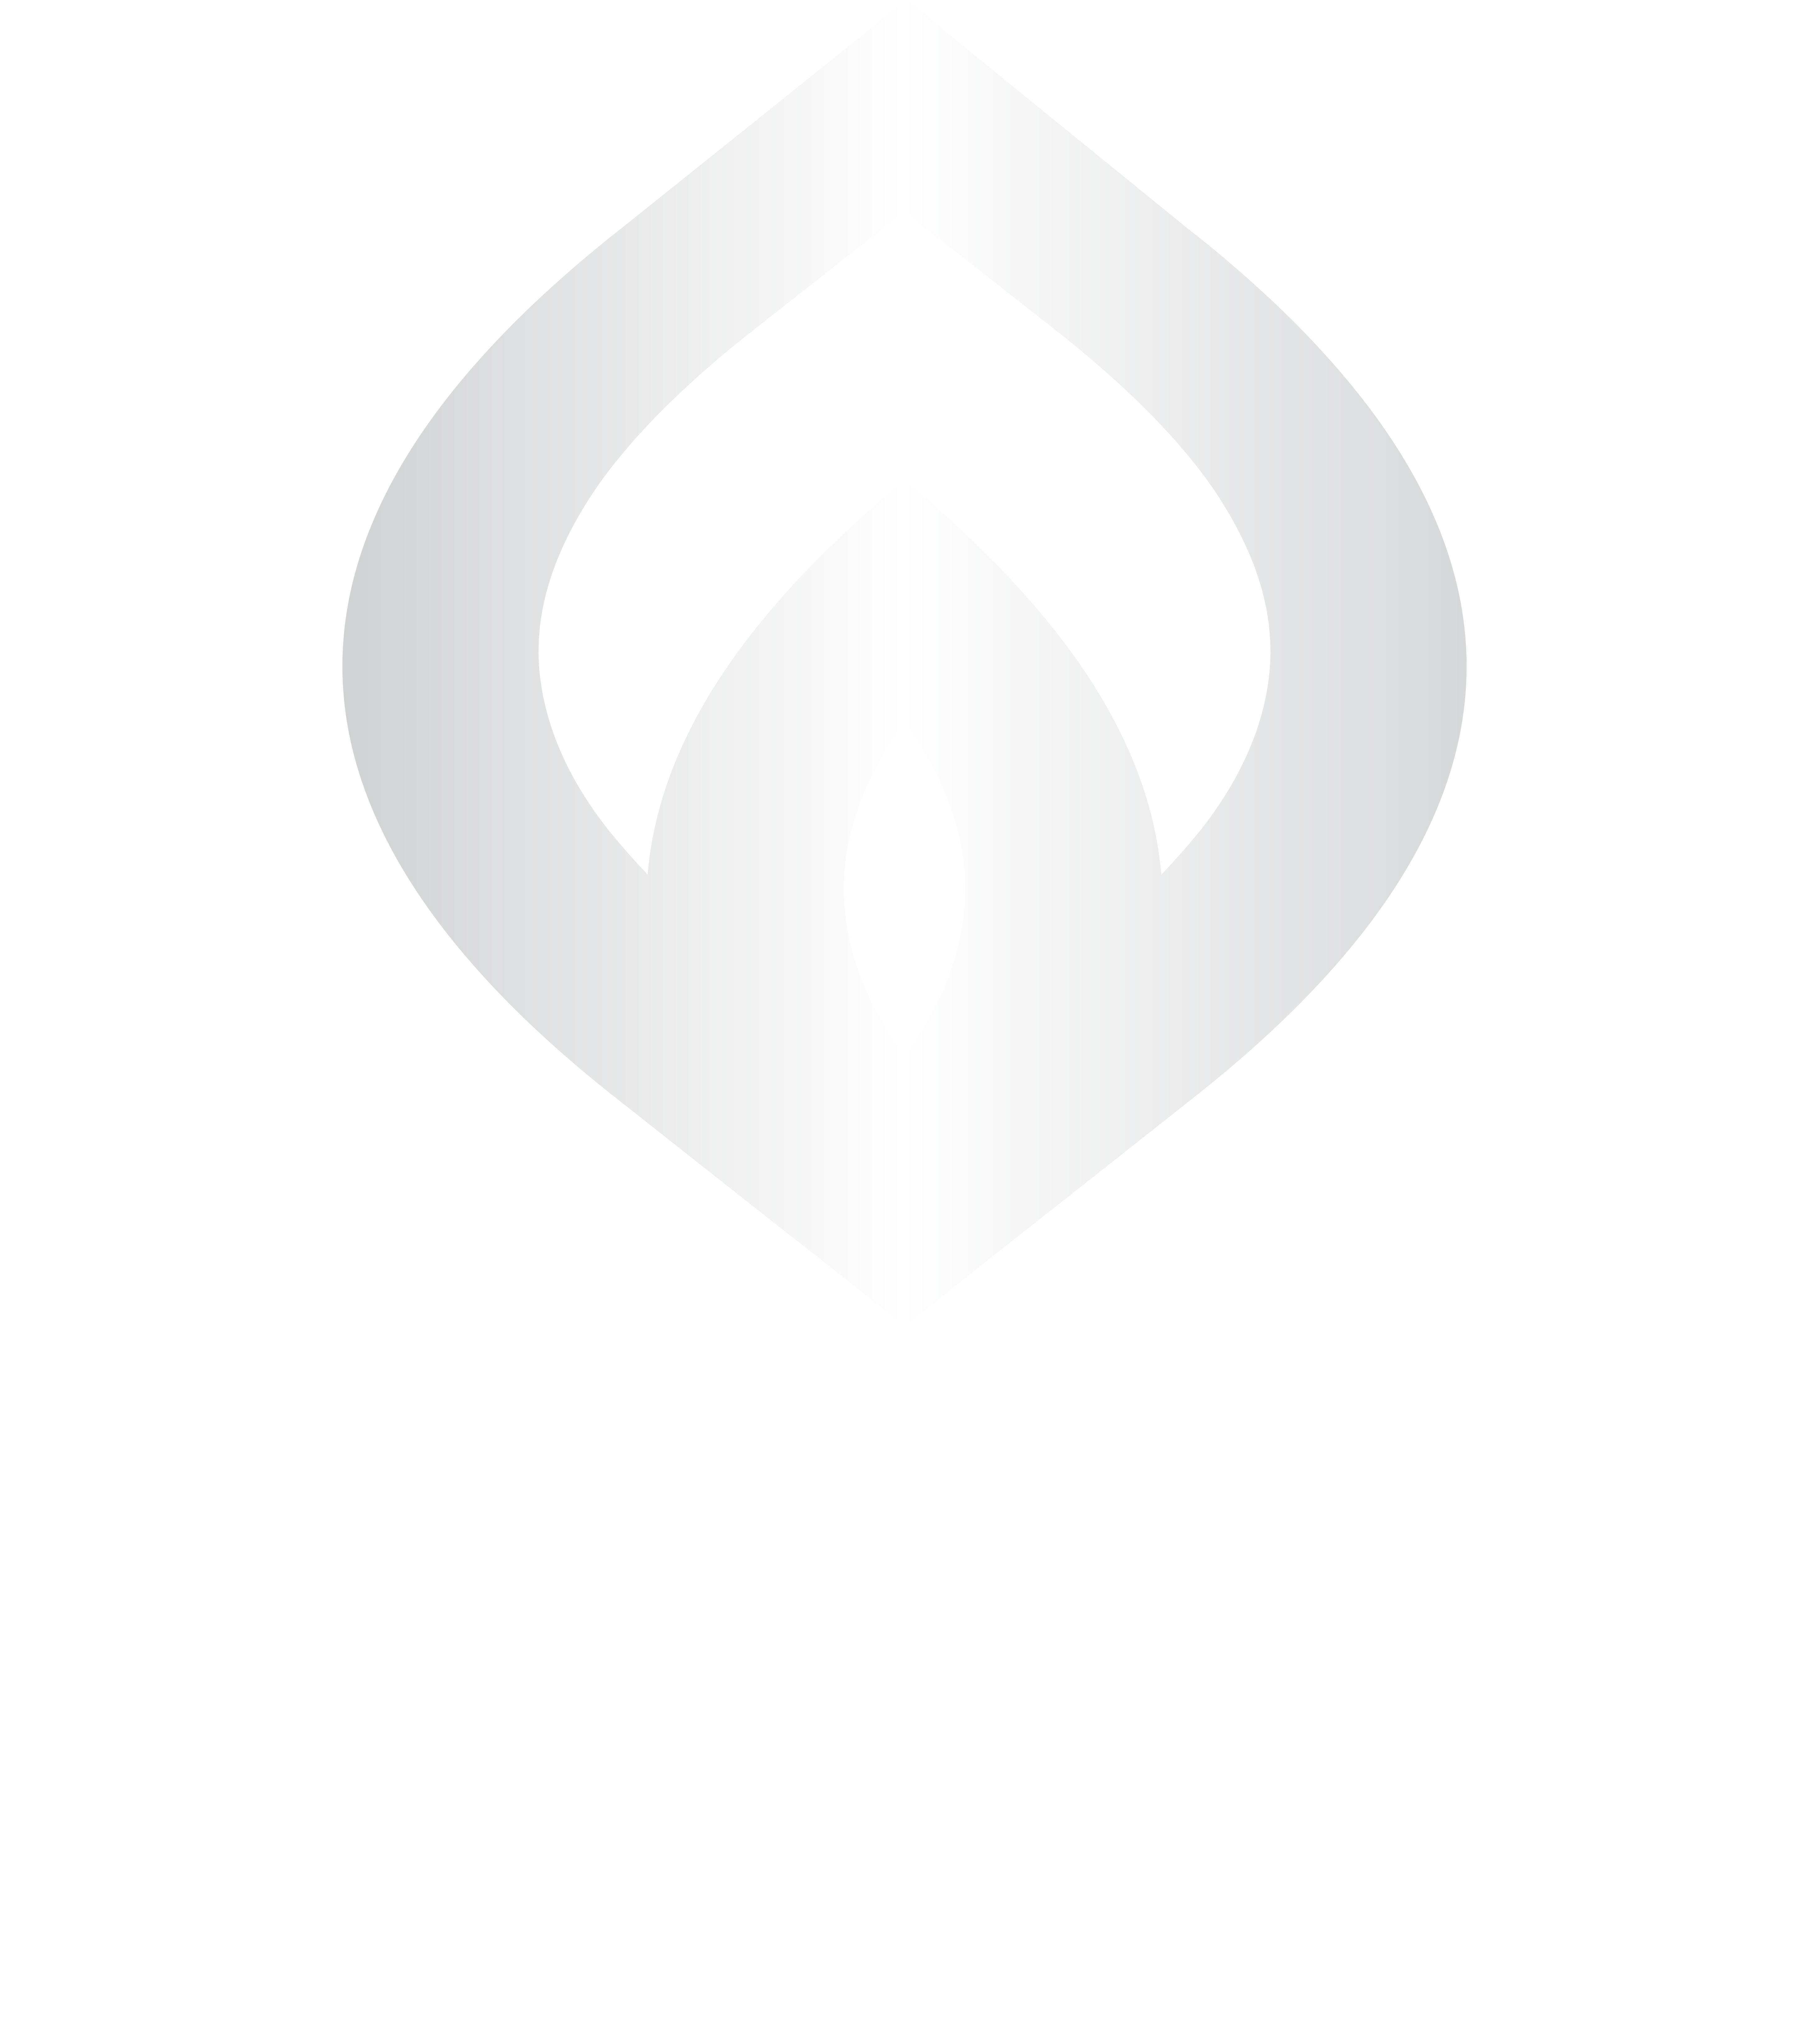 Create a capturing athletic wear logo, for Fearfully Made that will be used to change the world.